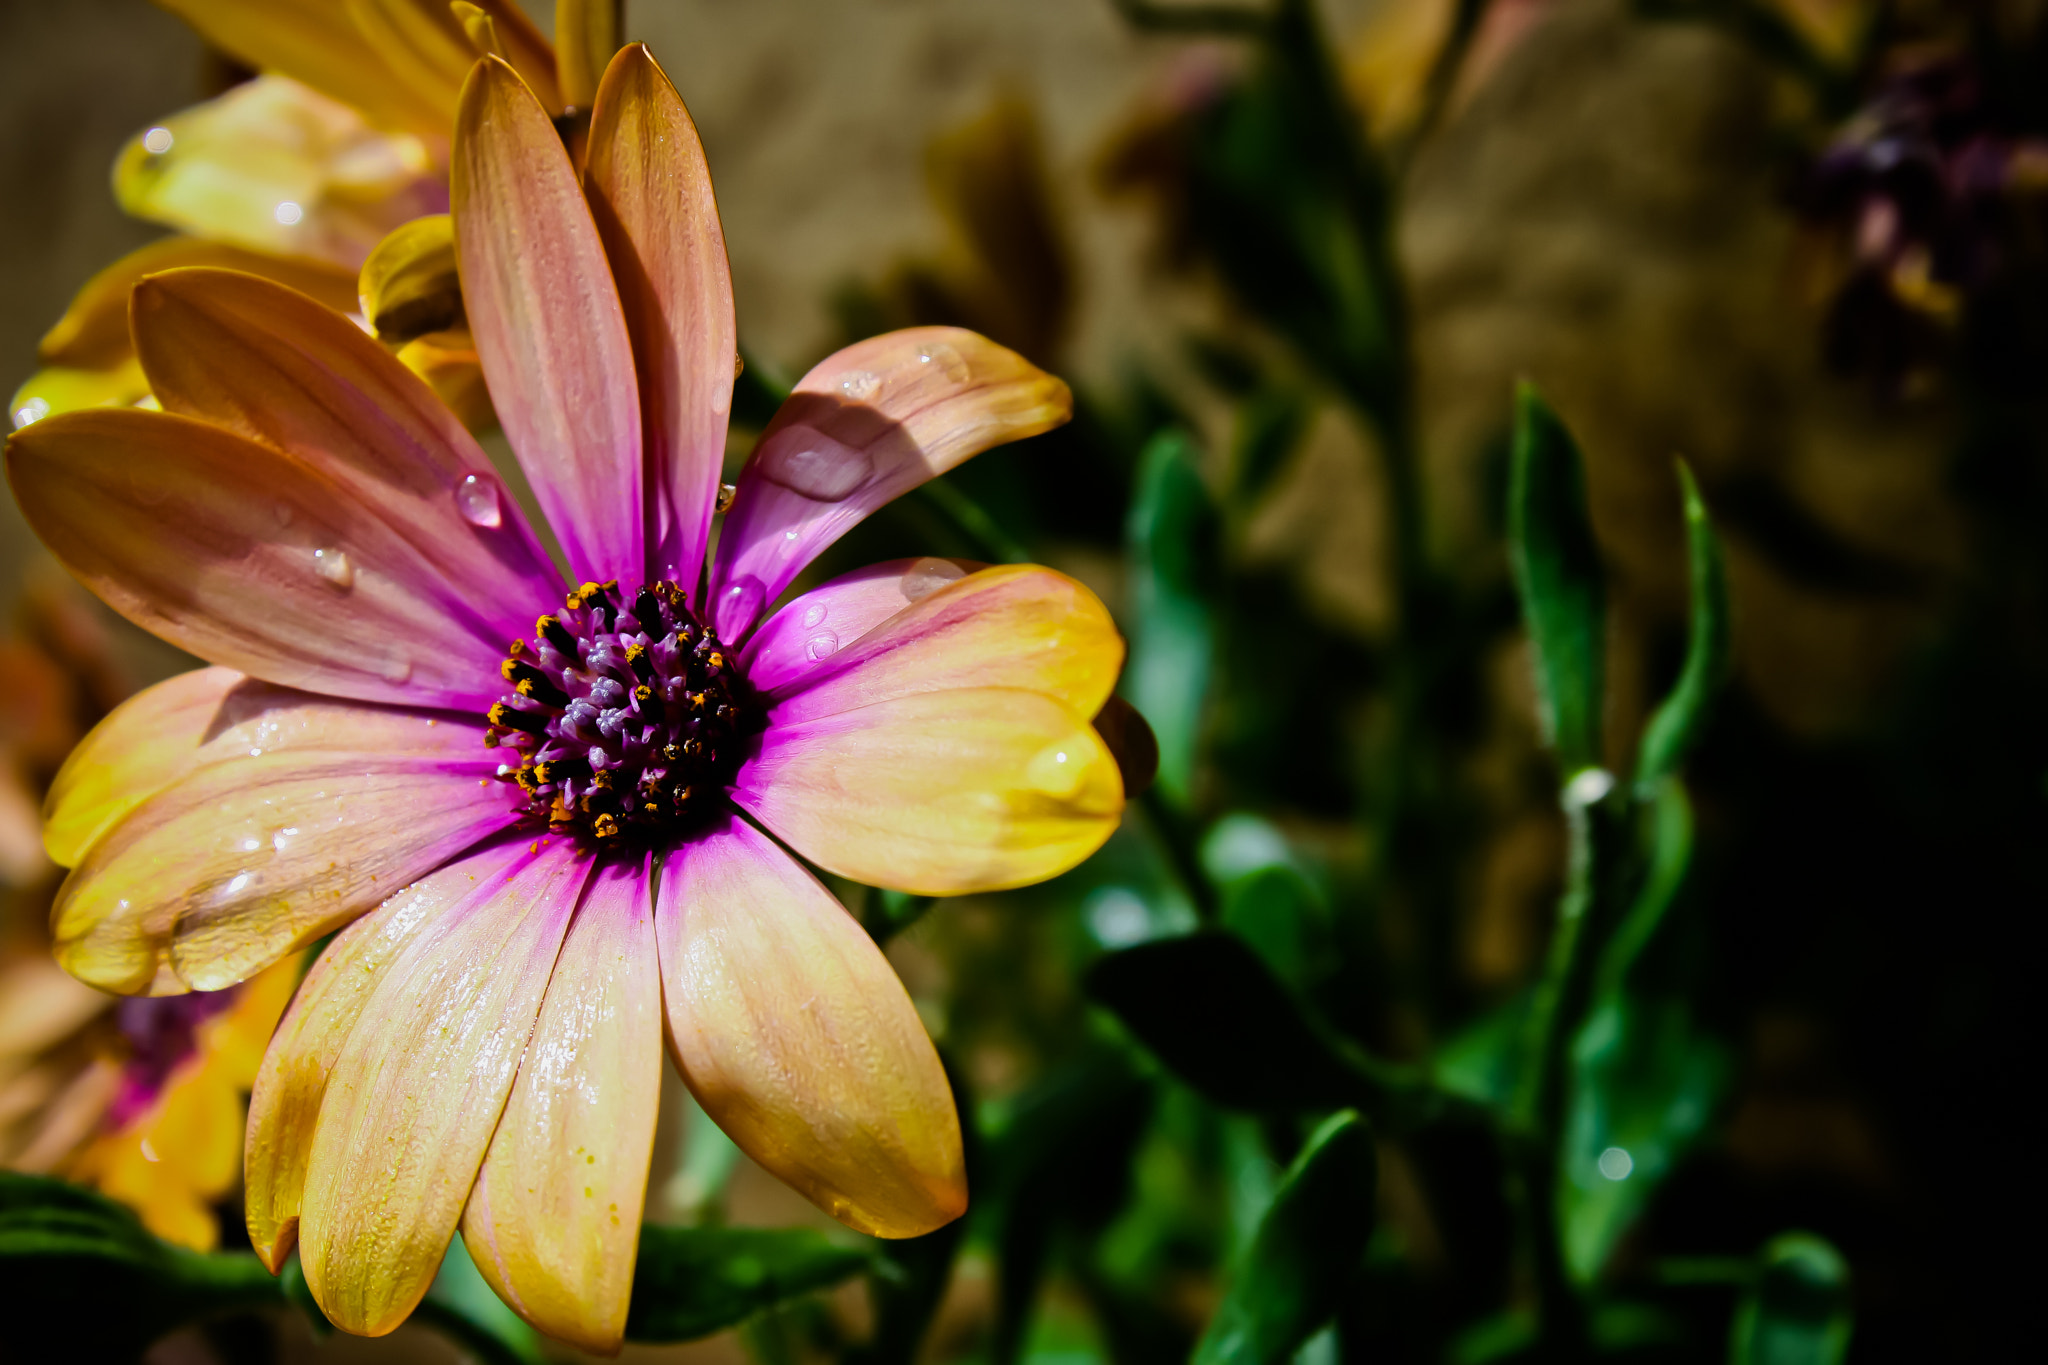 Photograph Flower II by Kirk Wallace on 500px